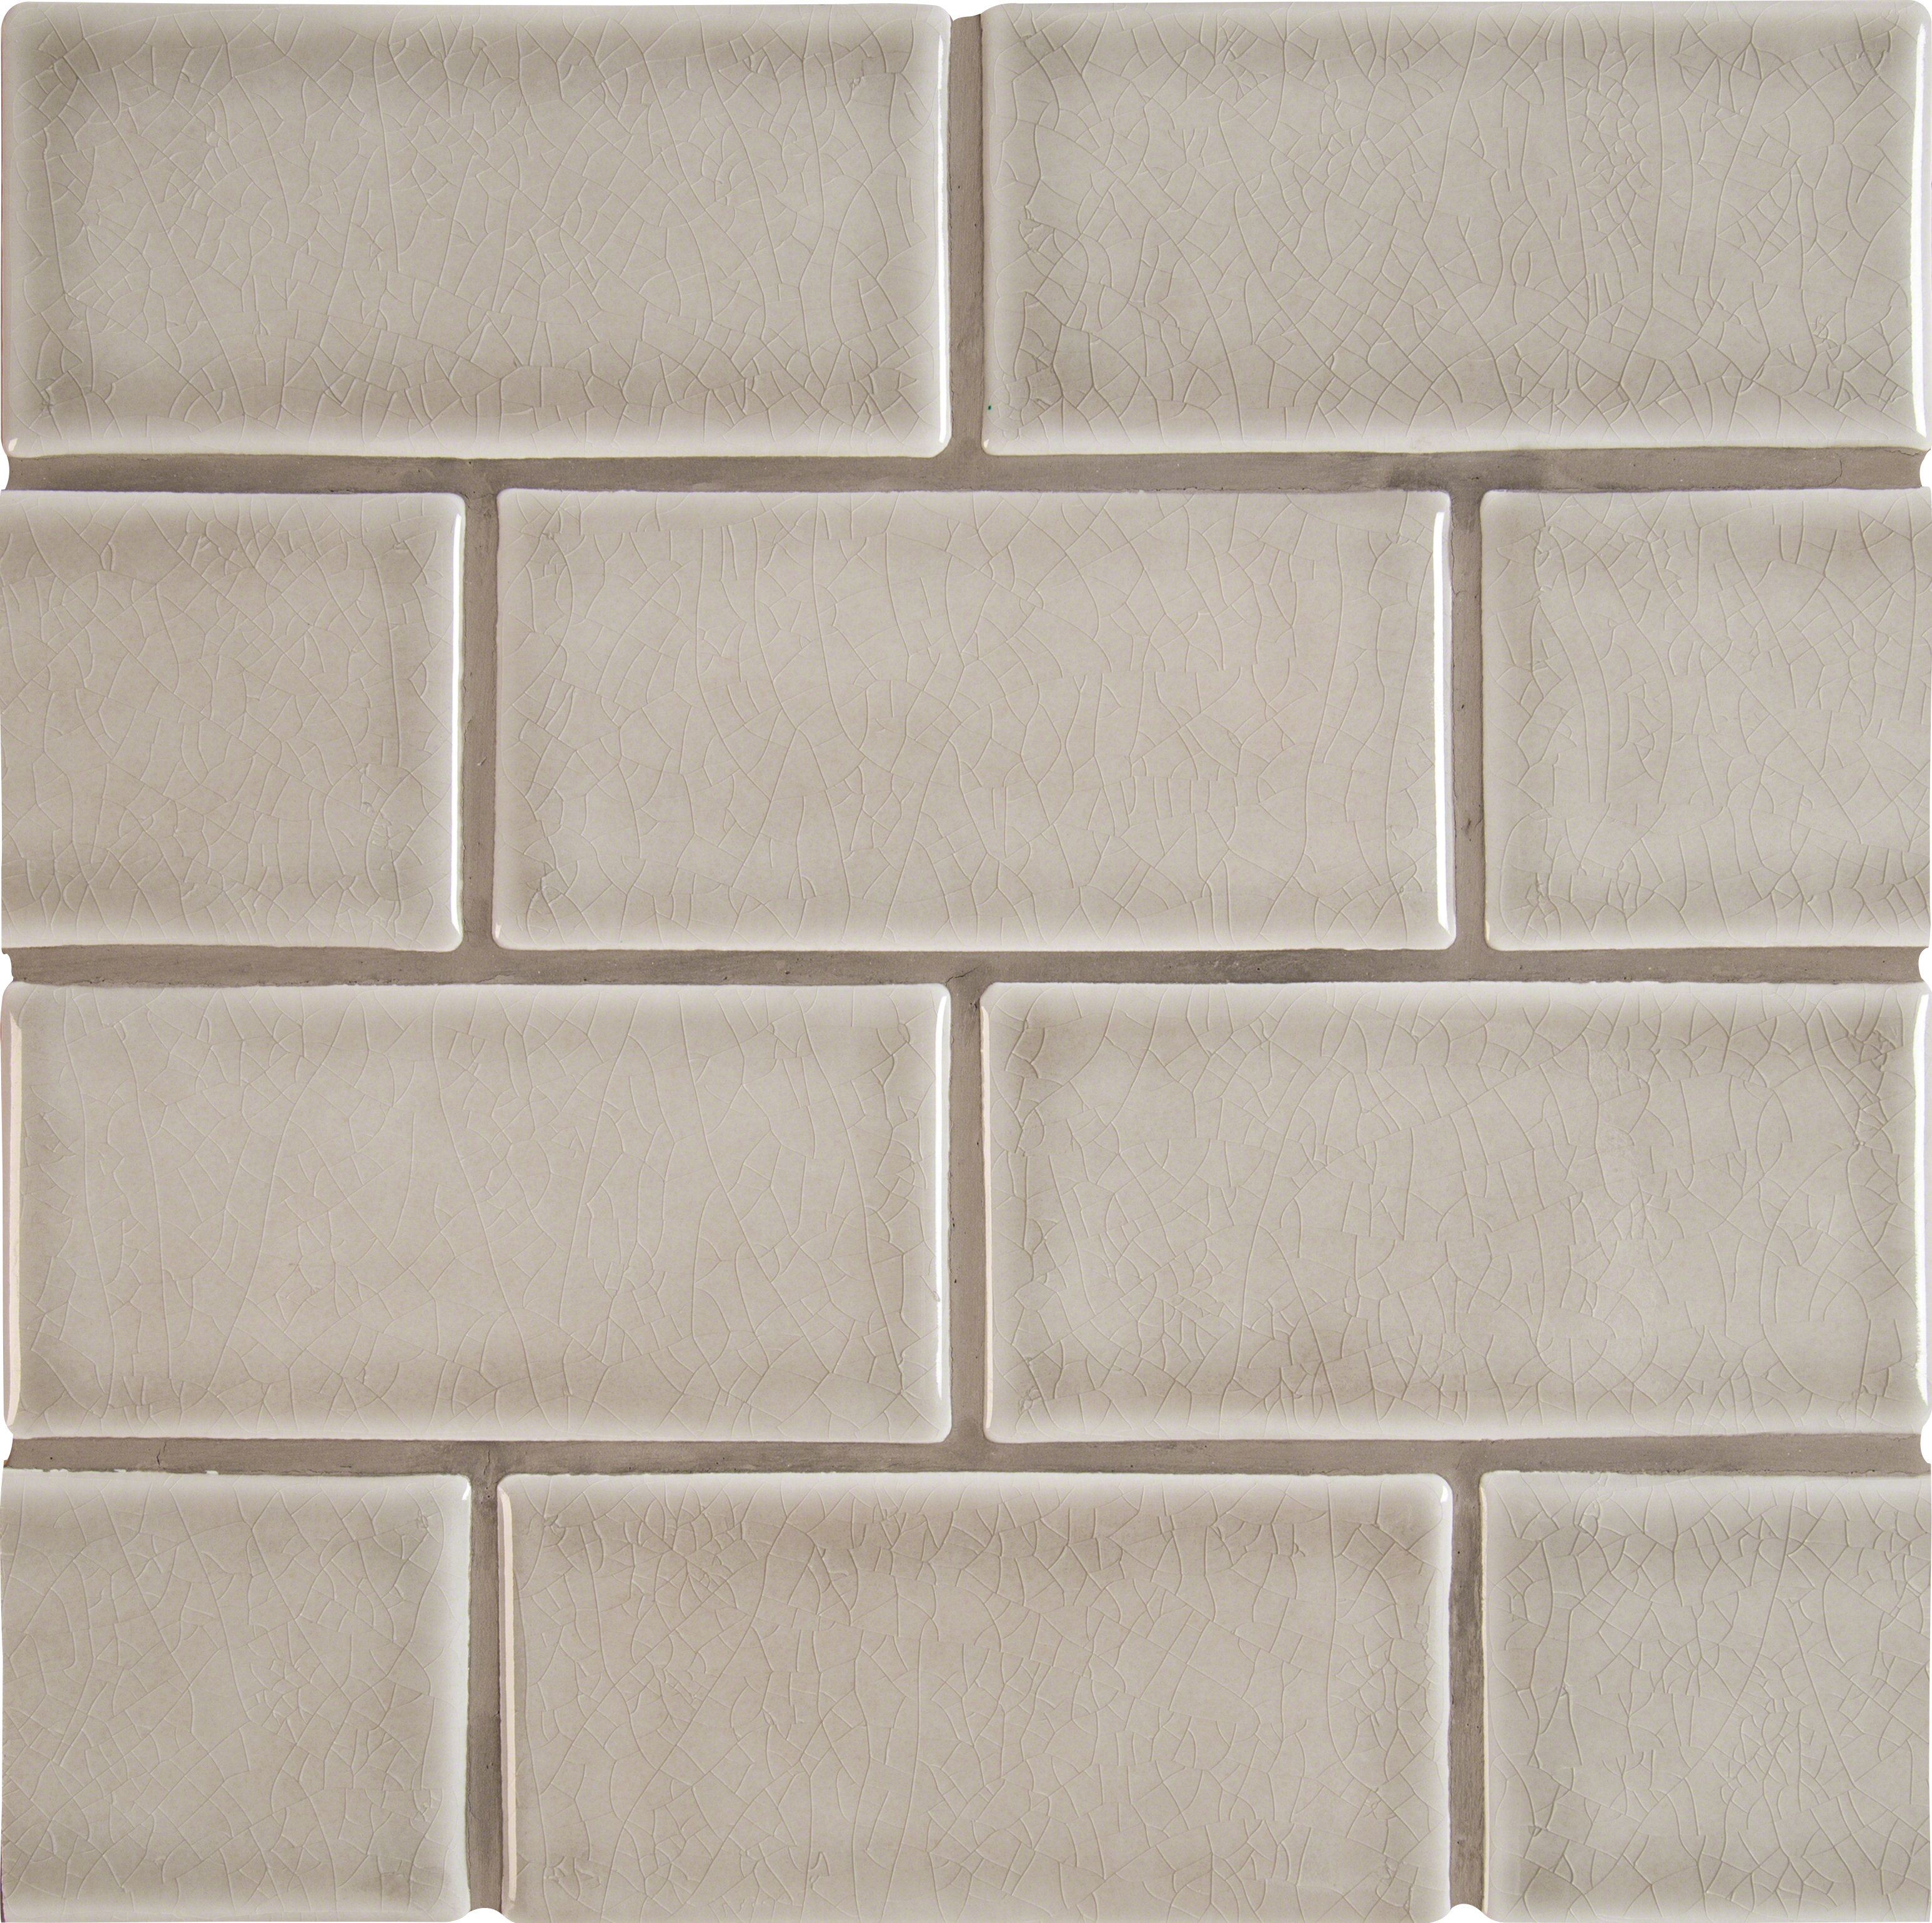 M s international wayfair 3 x 6 ceramic subway tile in dove gray dailygadgetfo Gallery